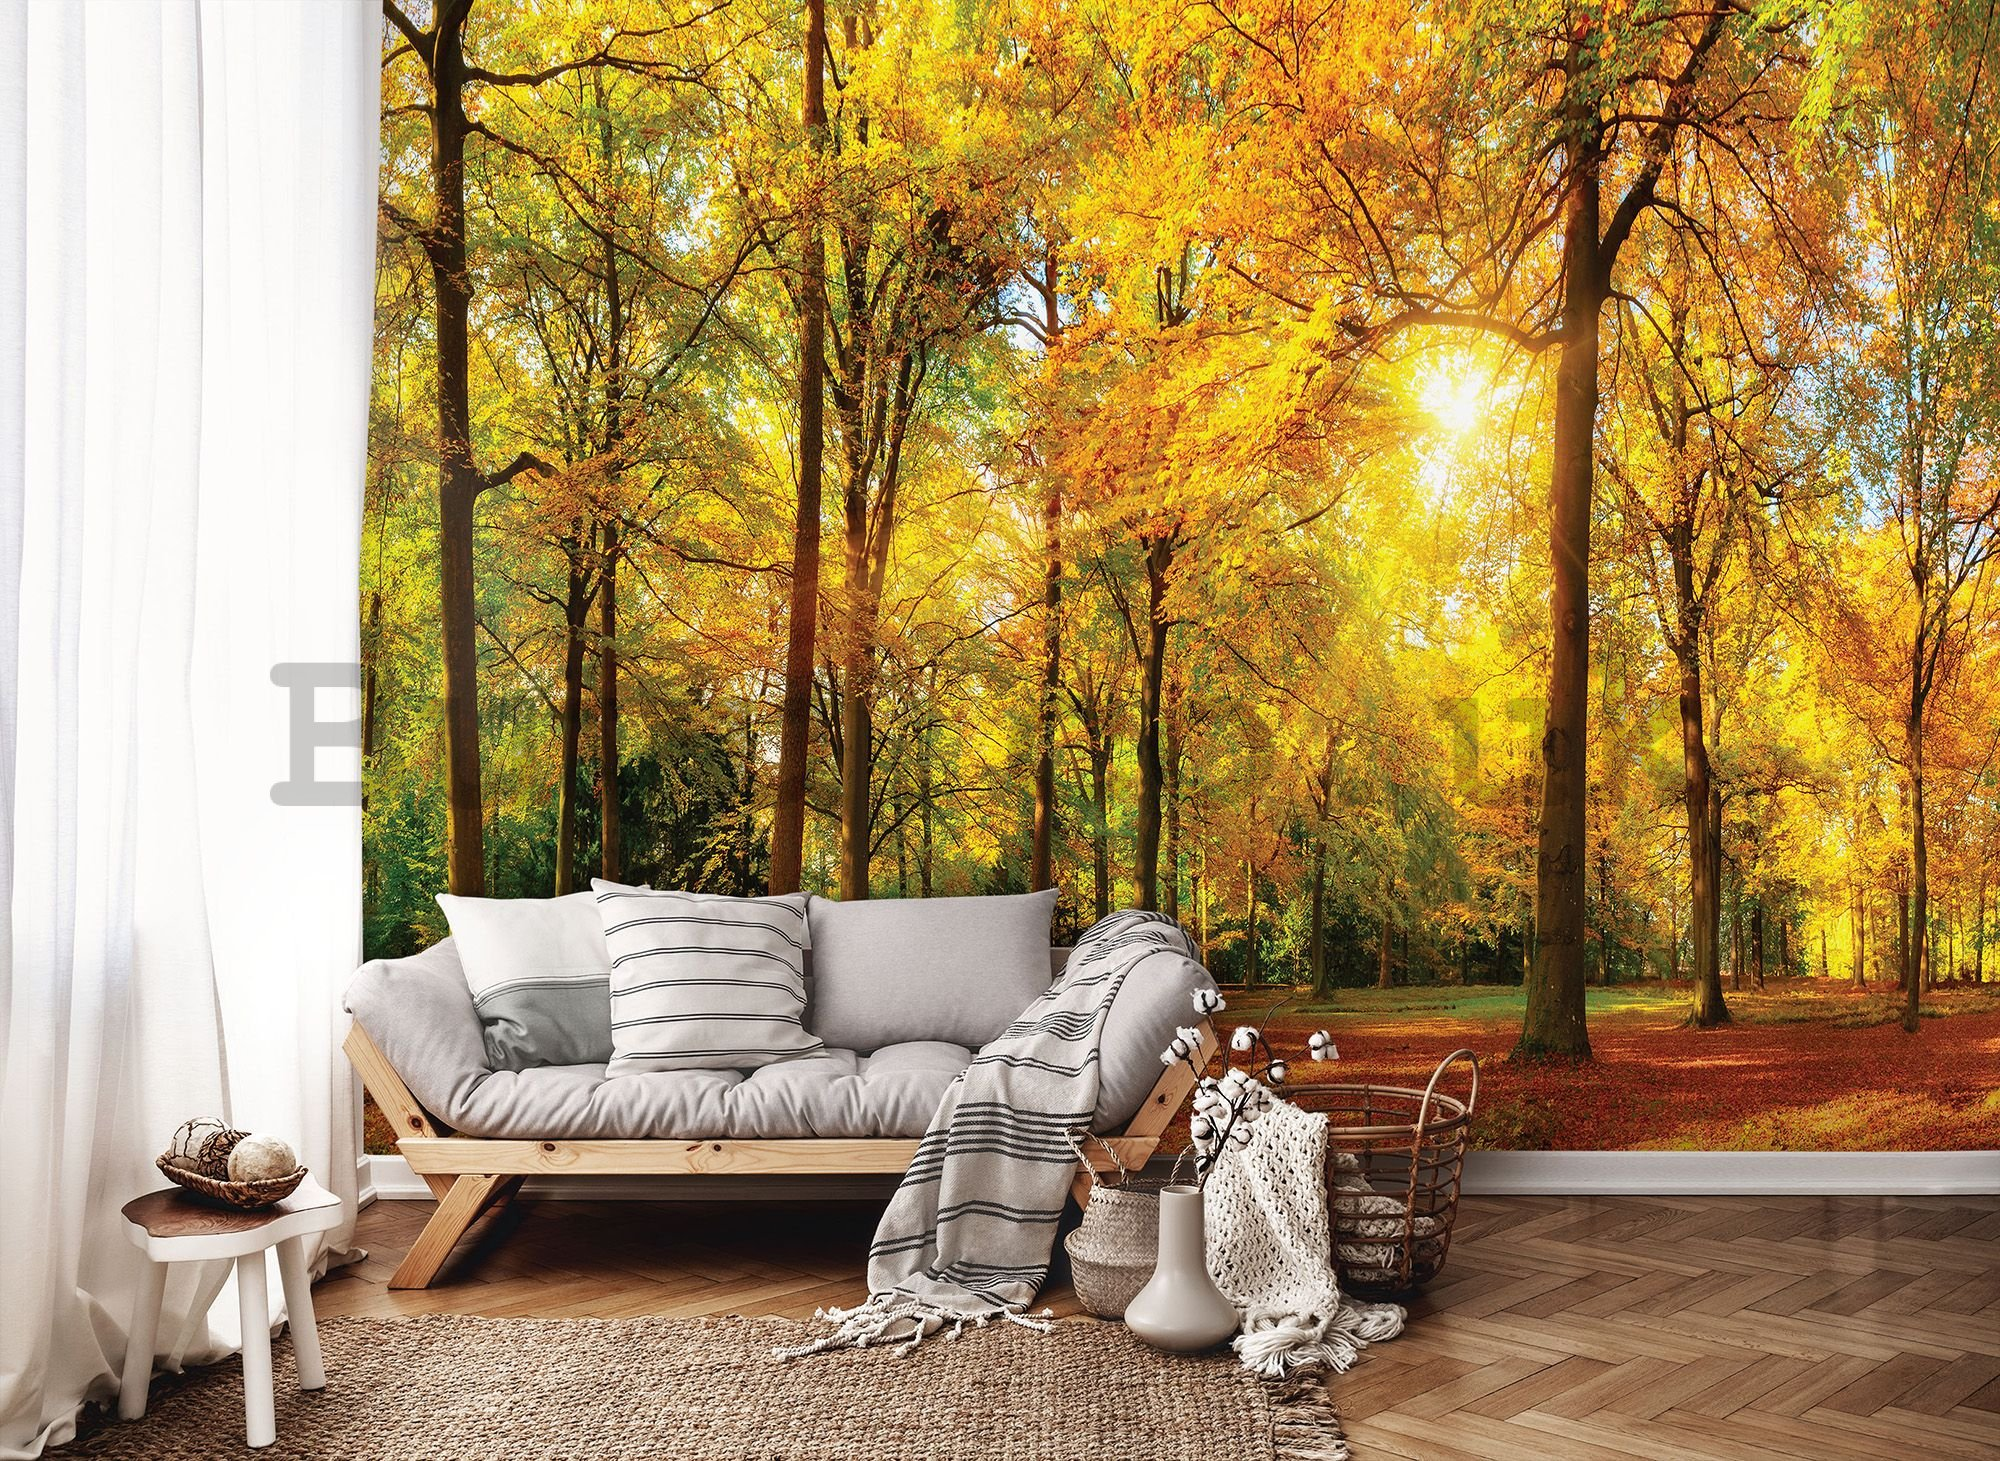 Wall mural vlies: Fallen leaves in the forest - 416x254 cm